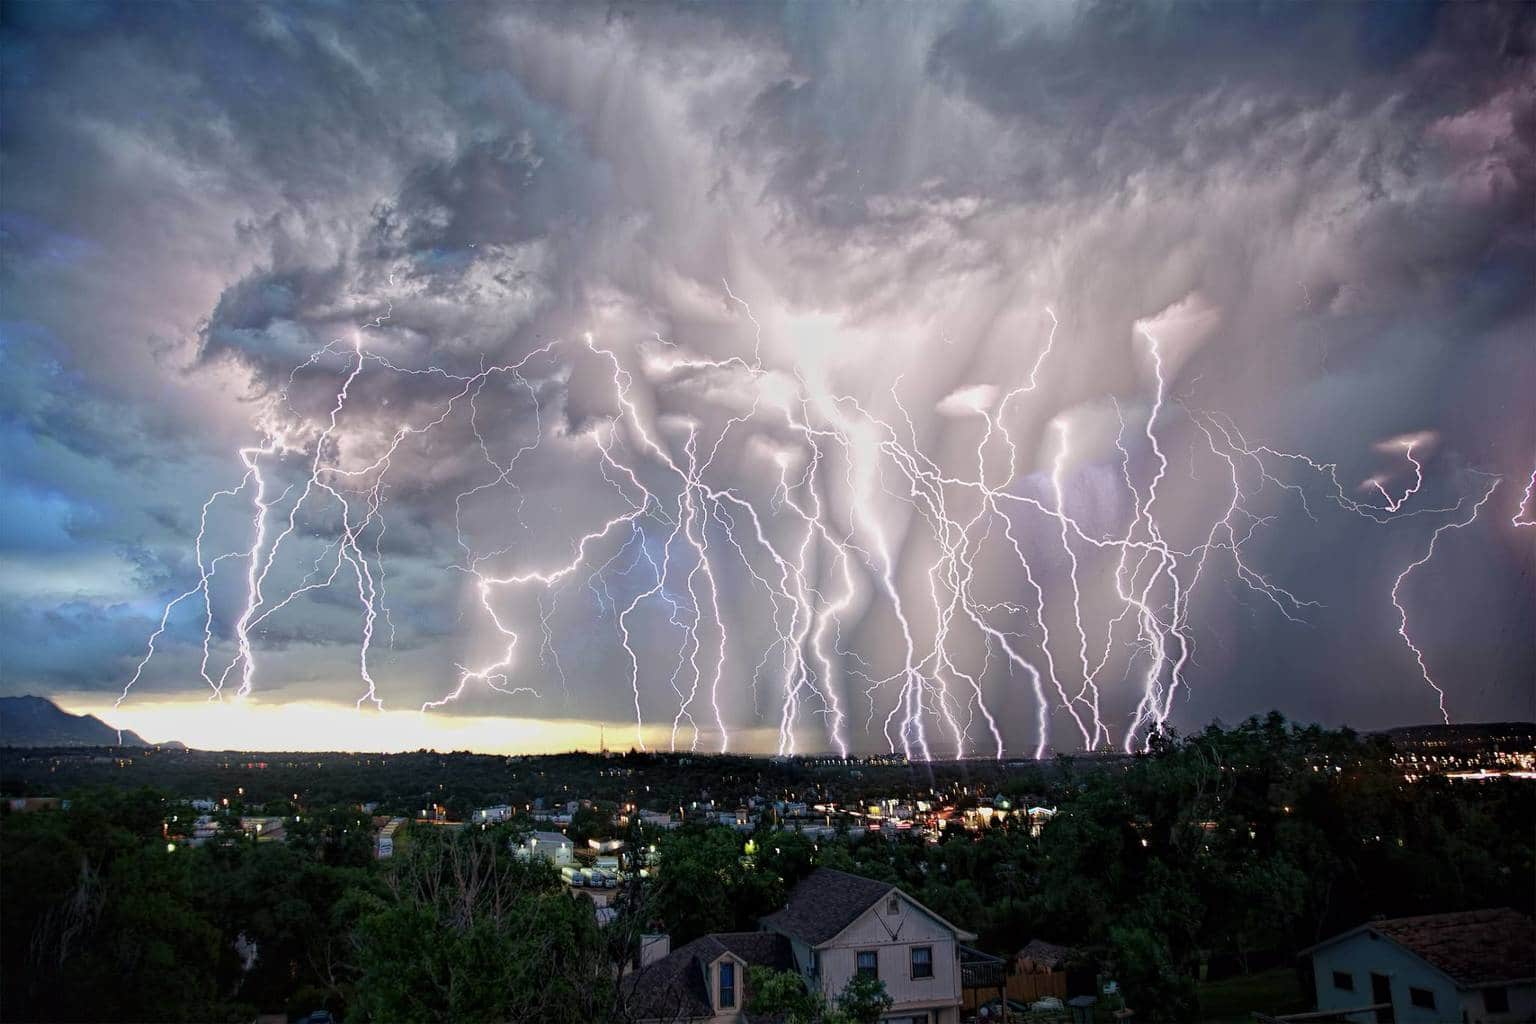 Tonight's storm was intense. I was able to put together this composite of lightning bolts before I was chased to cover. This was looking north from near downtown Colorado Springs. 06/28/2015